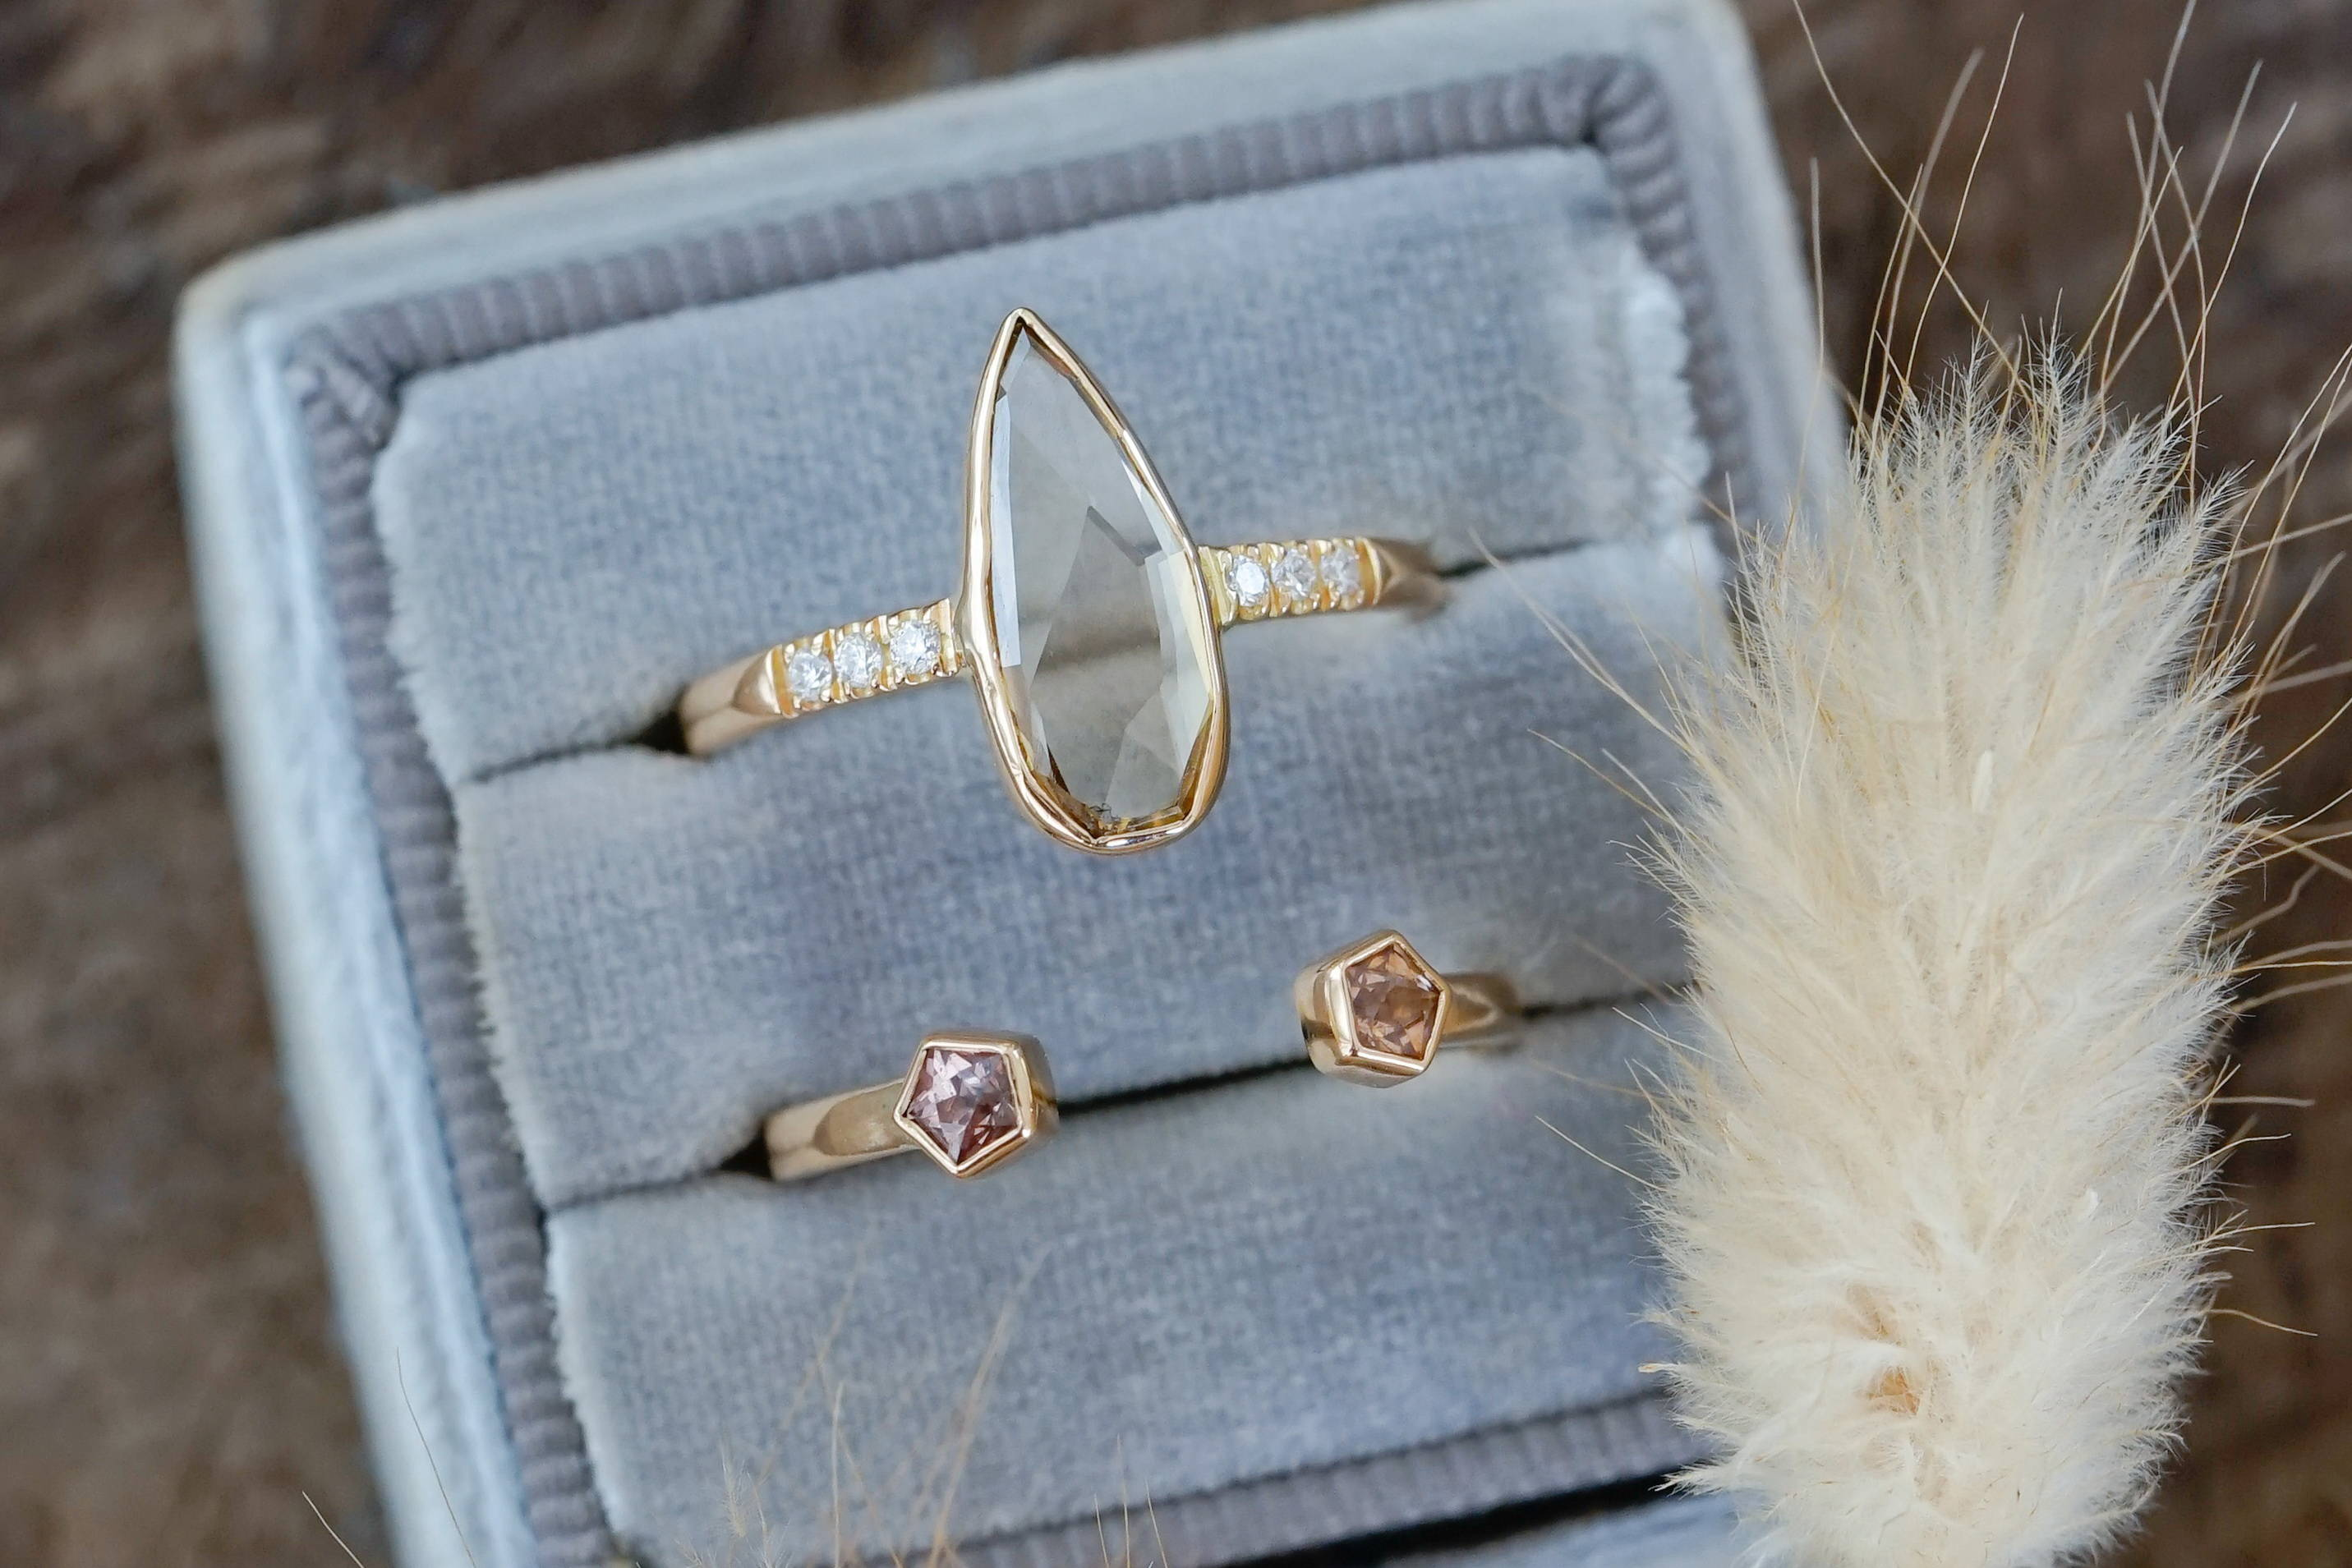 Ethical diamonds make this the ultimate ethical gold ring